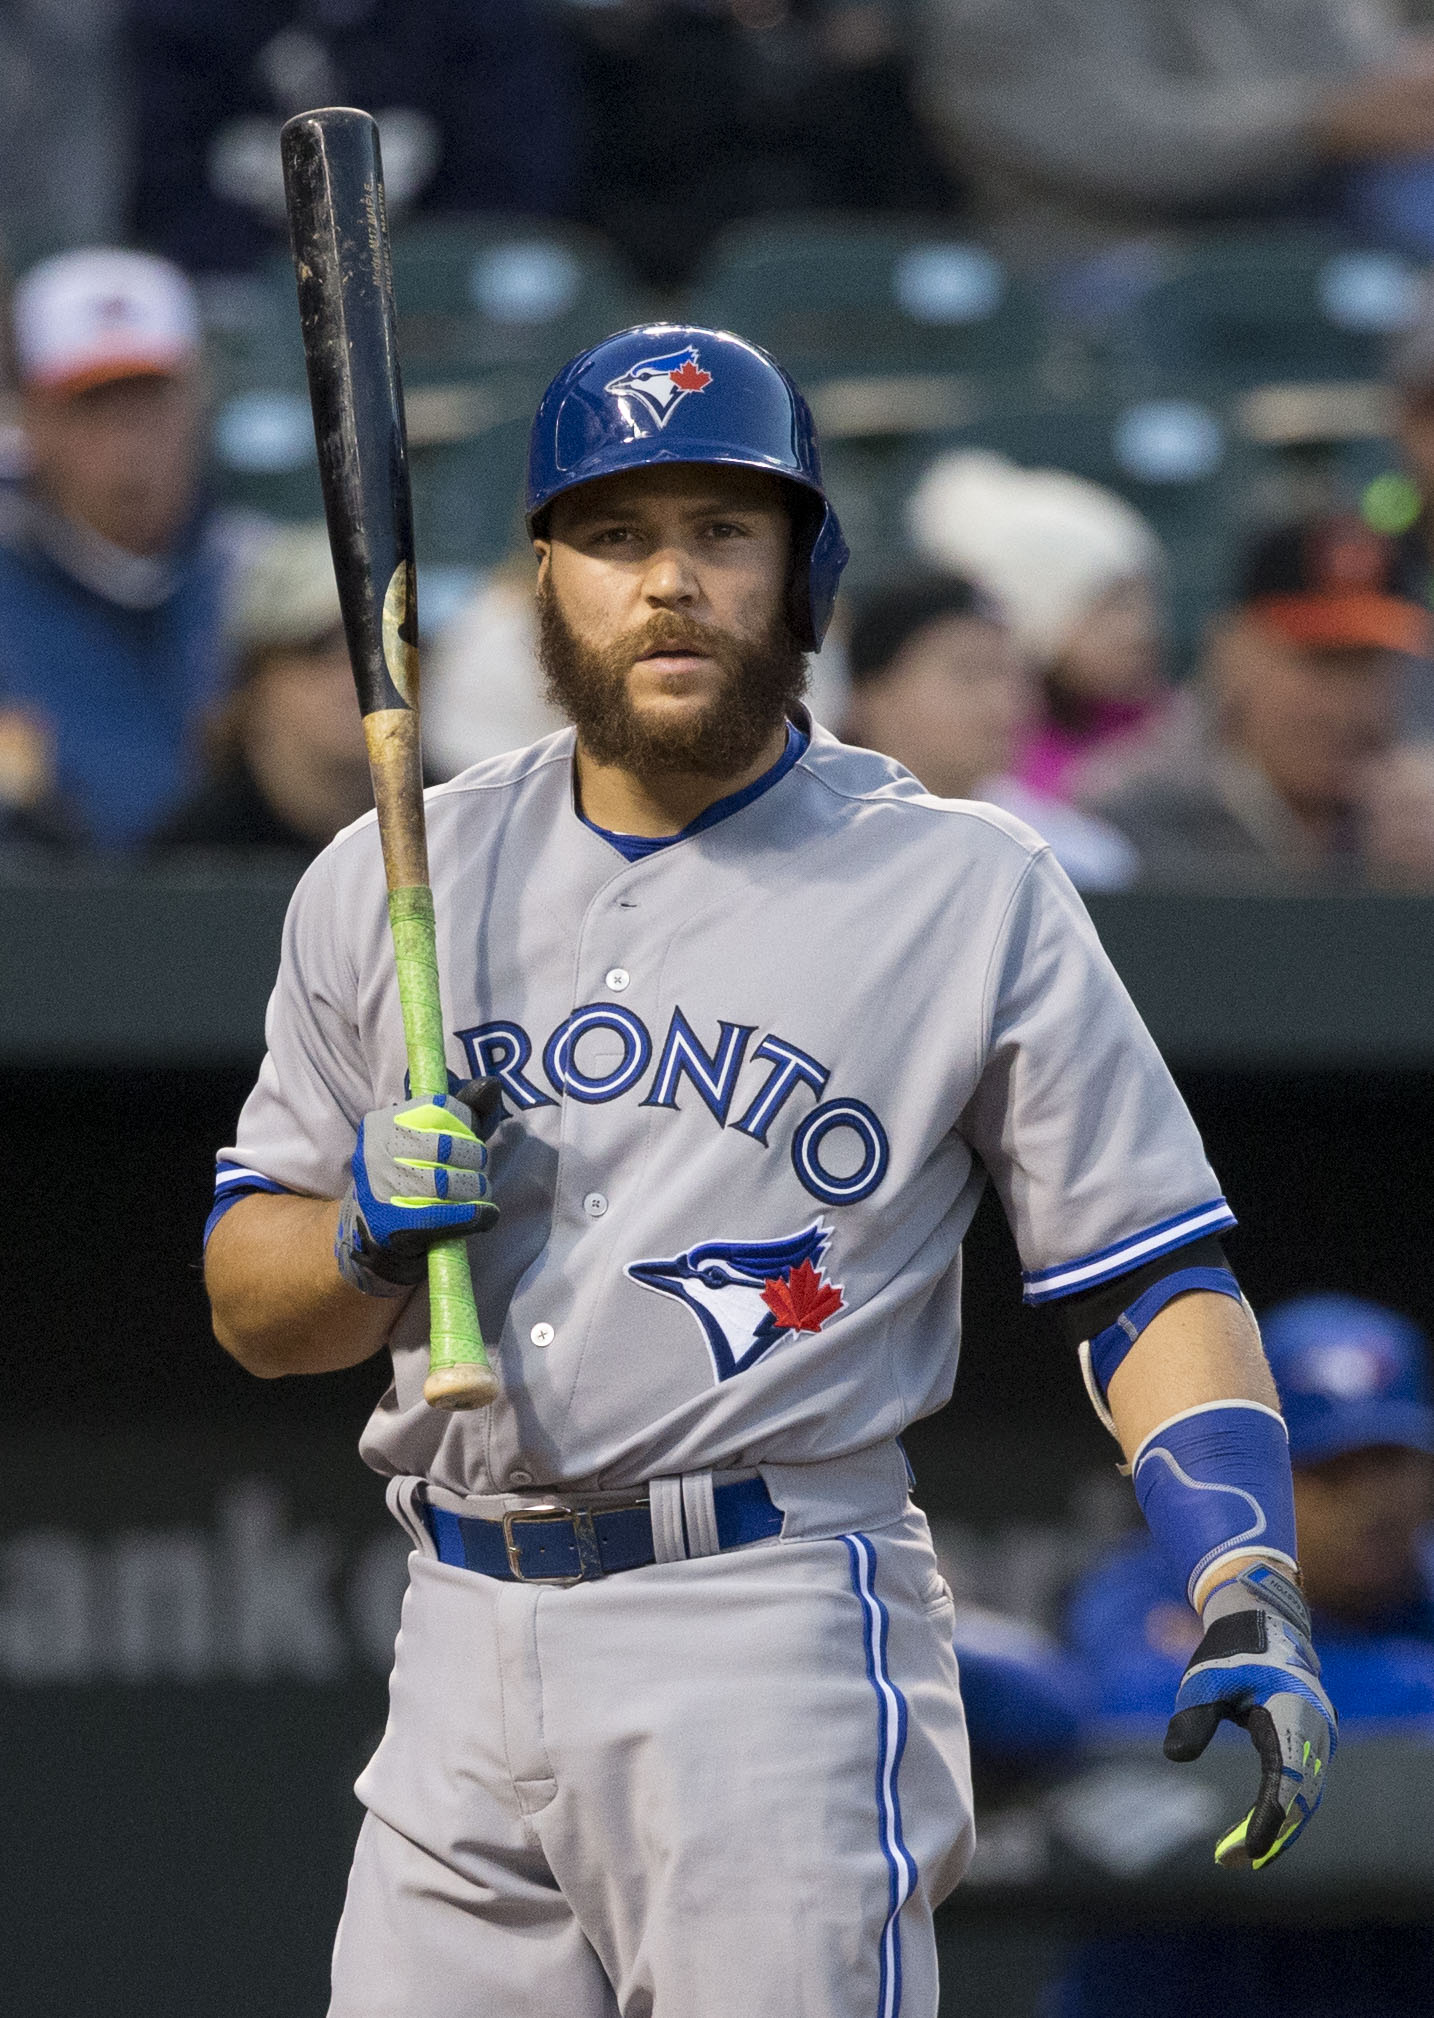 The 35-year old son of father Russell Martin Sr. and mother Suzanne Jeanson Russell Martin in 2019 photo. Russell Martin earned a  million dollar salary - leaving the net worth at 8.5 million in 2019